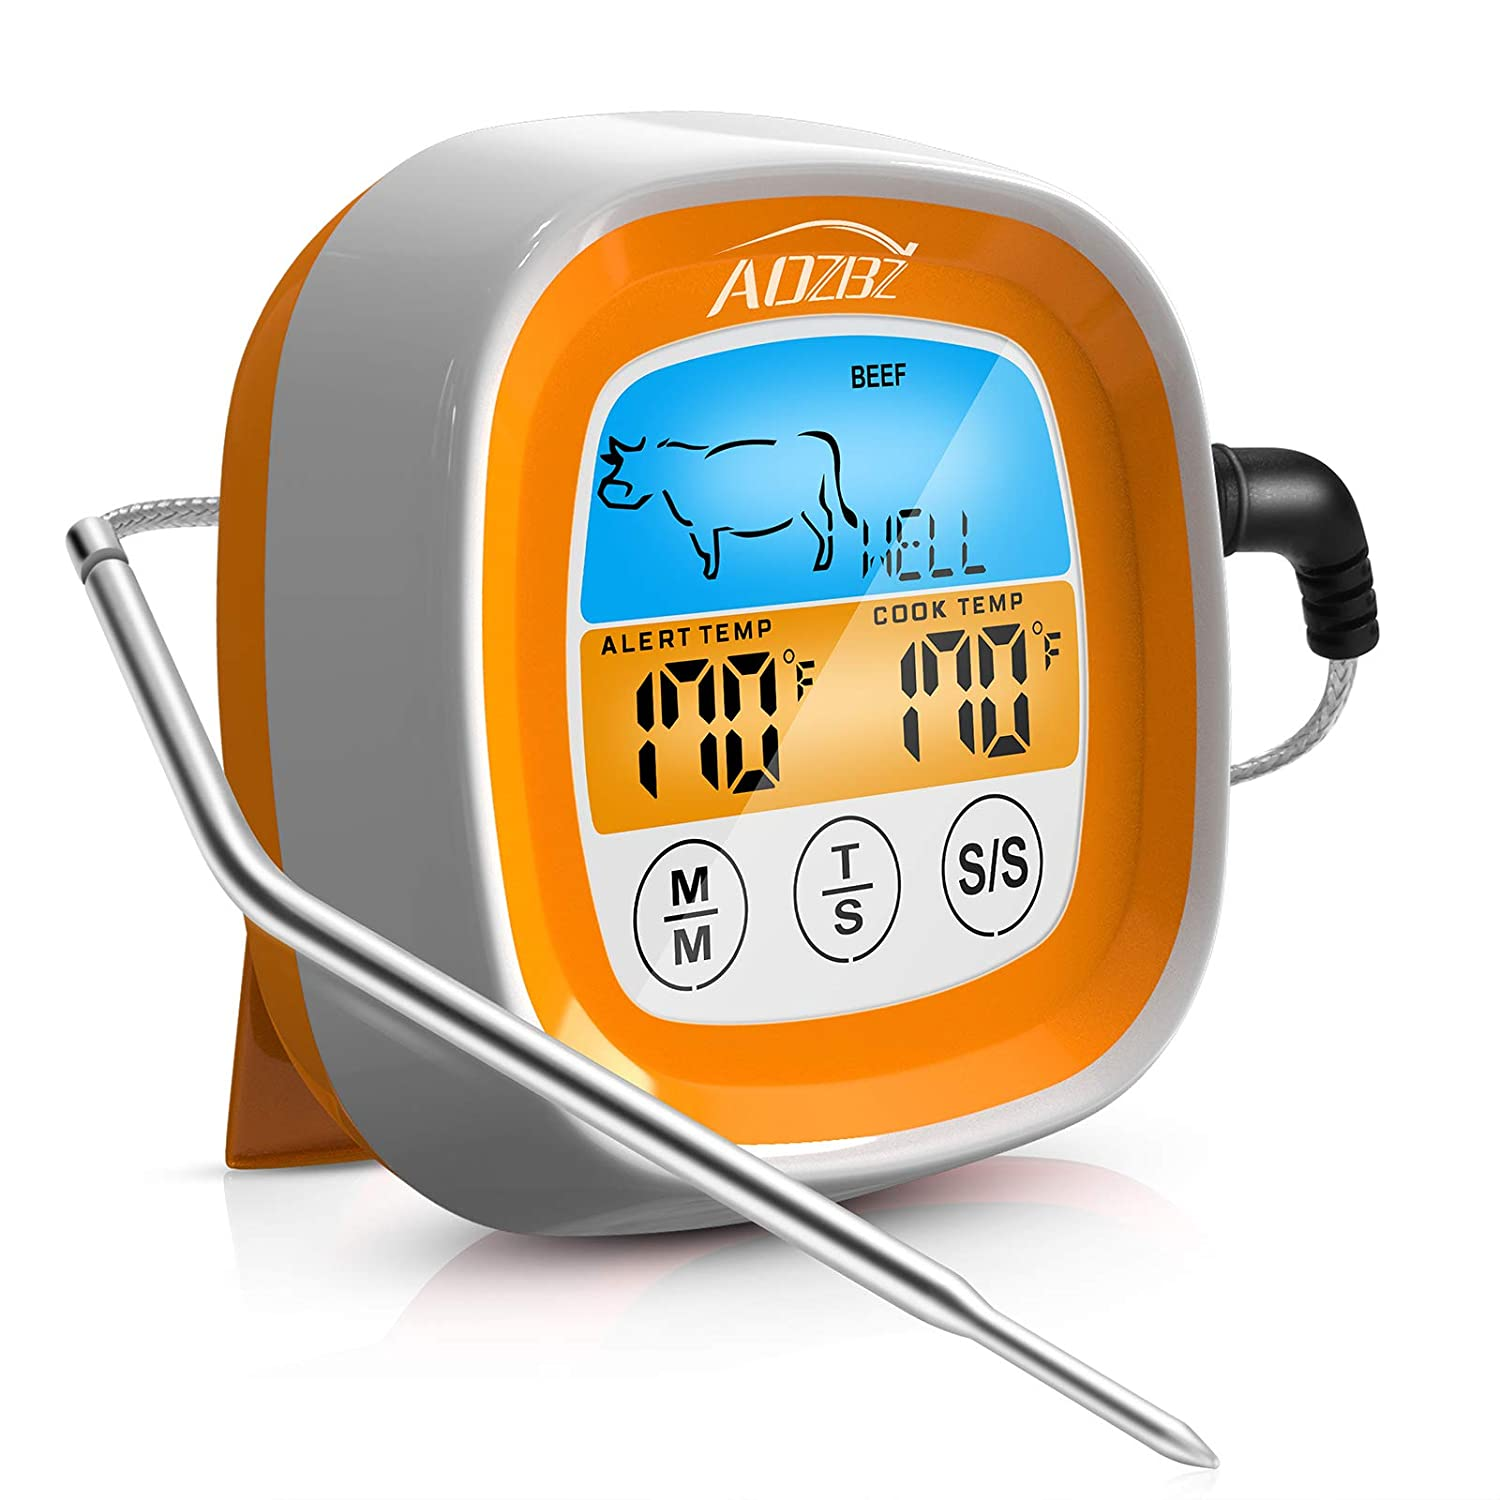 AOZBZ Digital Meat Food Thermometer, Suitable for Smoked Confectionery Food Barbecue and Kitchens Thermometers, Touch LCD Display Screen with Bracket and High Temperature Resistant Waterproof Probe